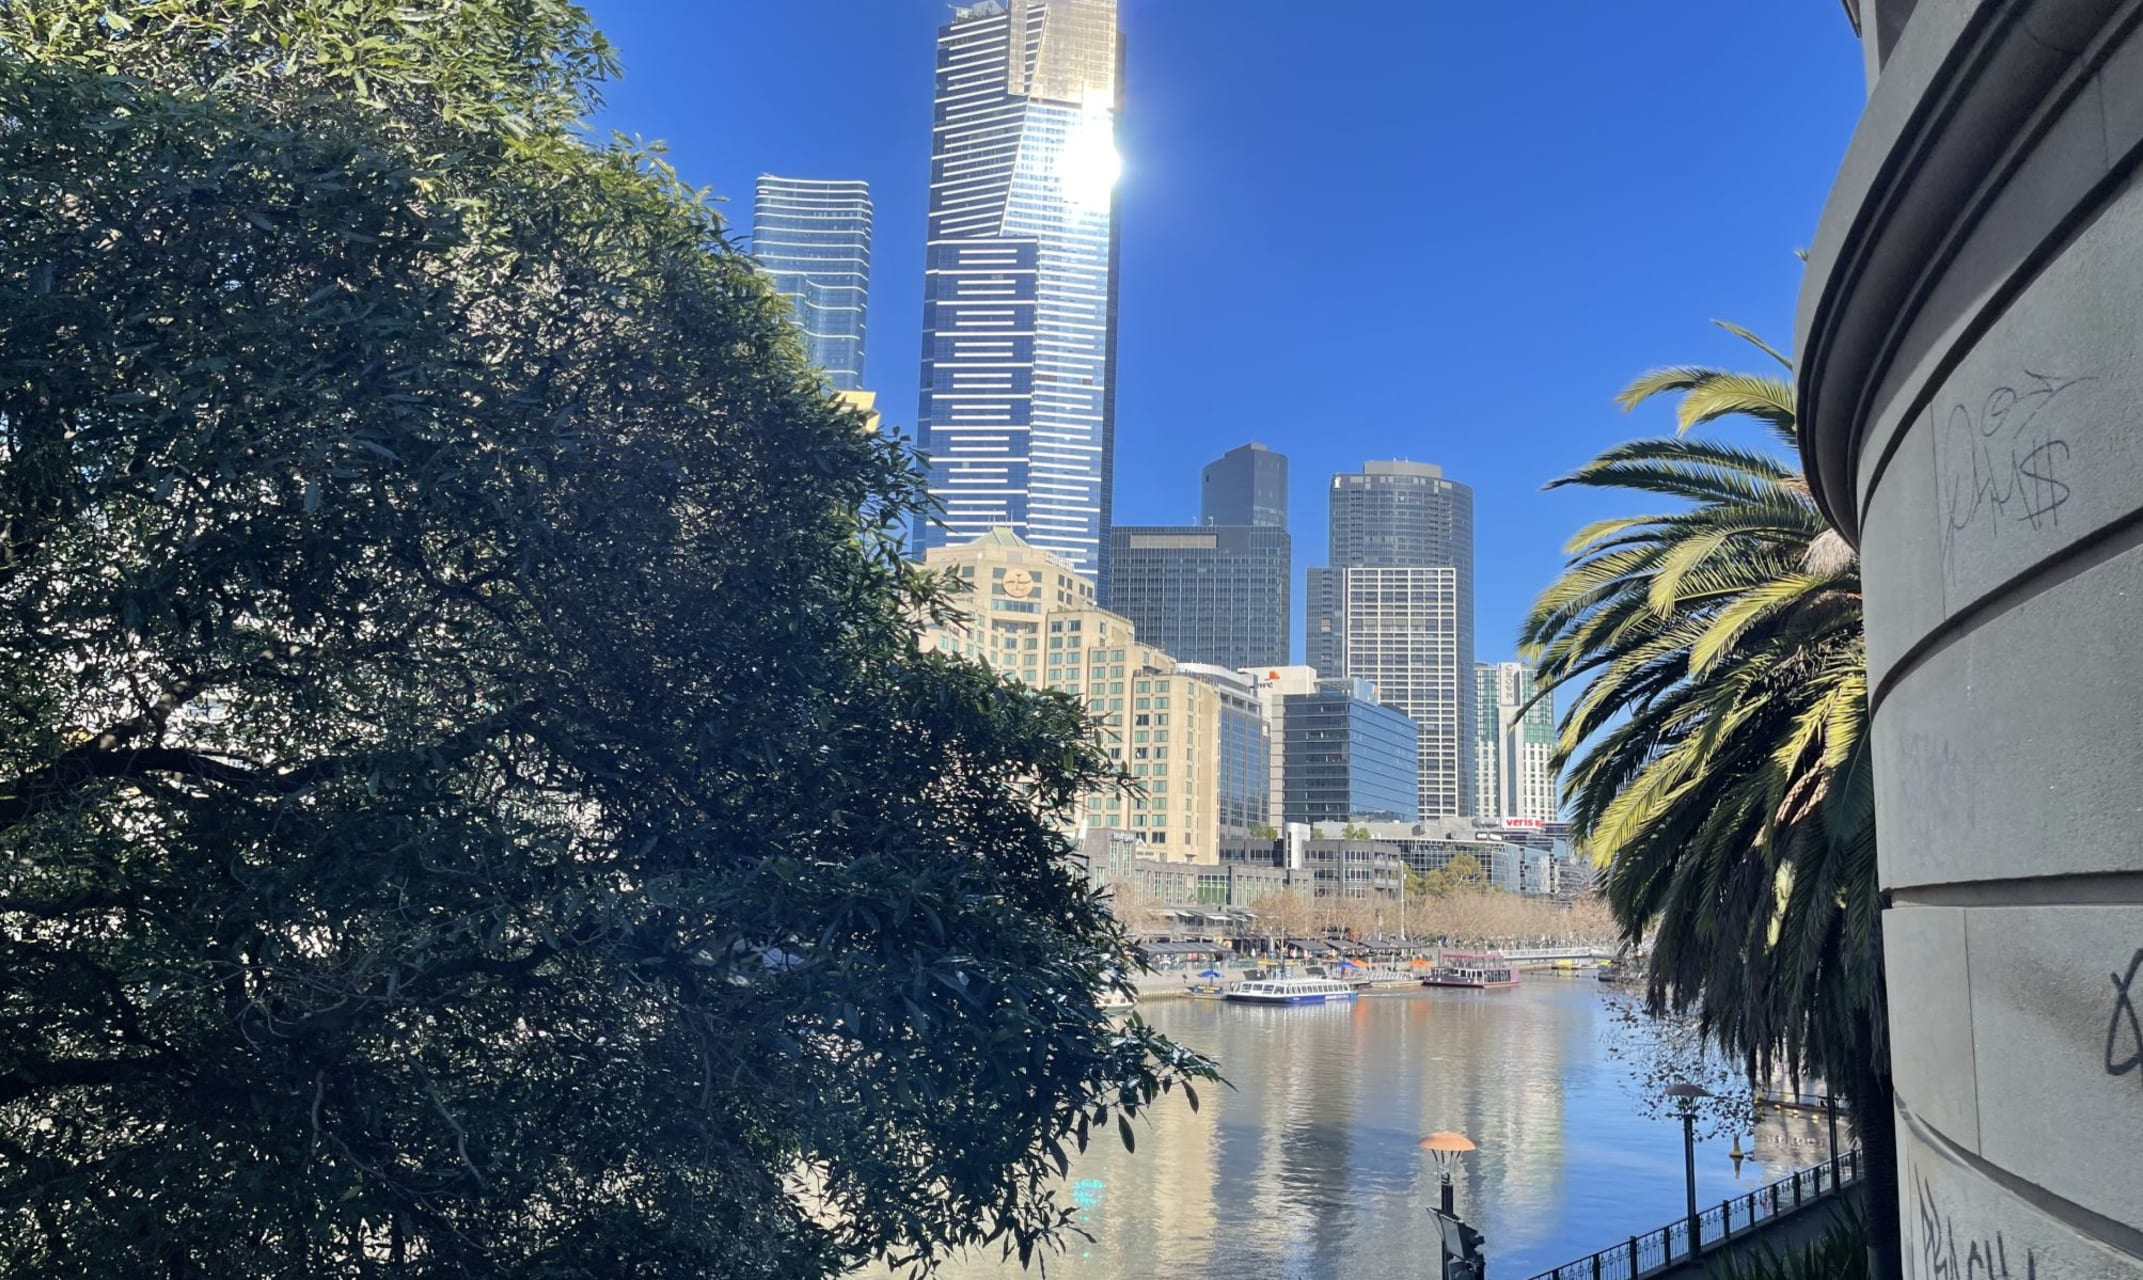 Melbourne - Cruising Up the River